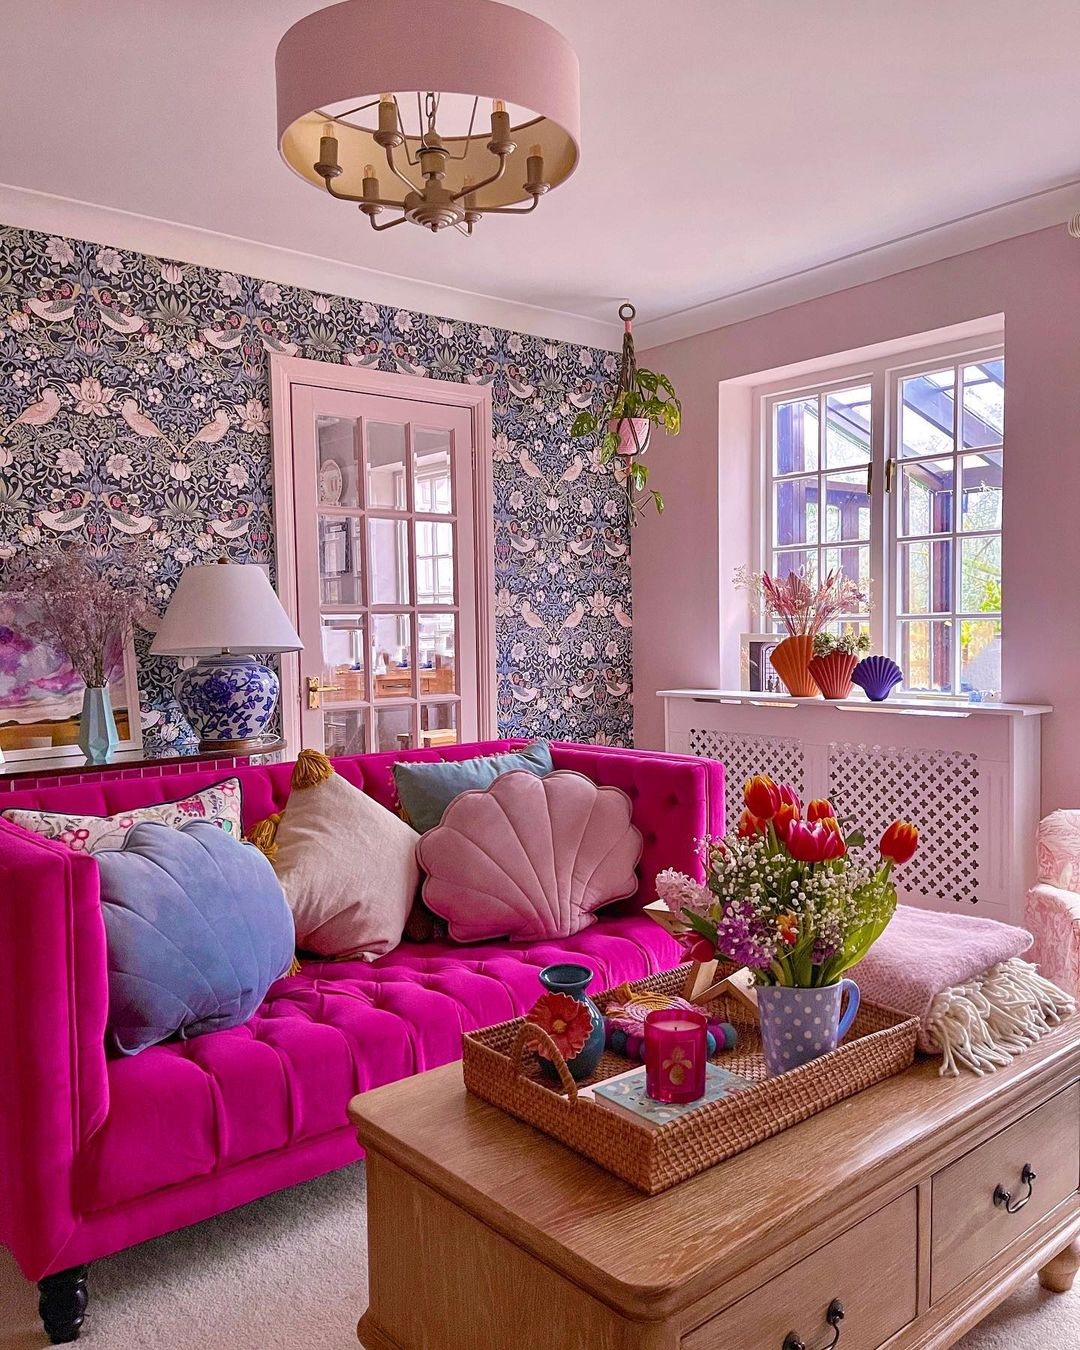 Aesthetic floral decors